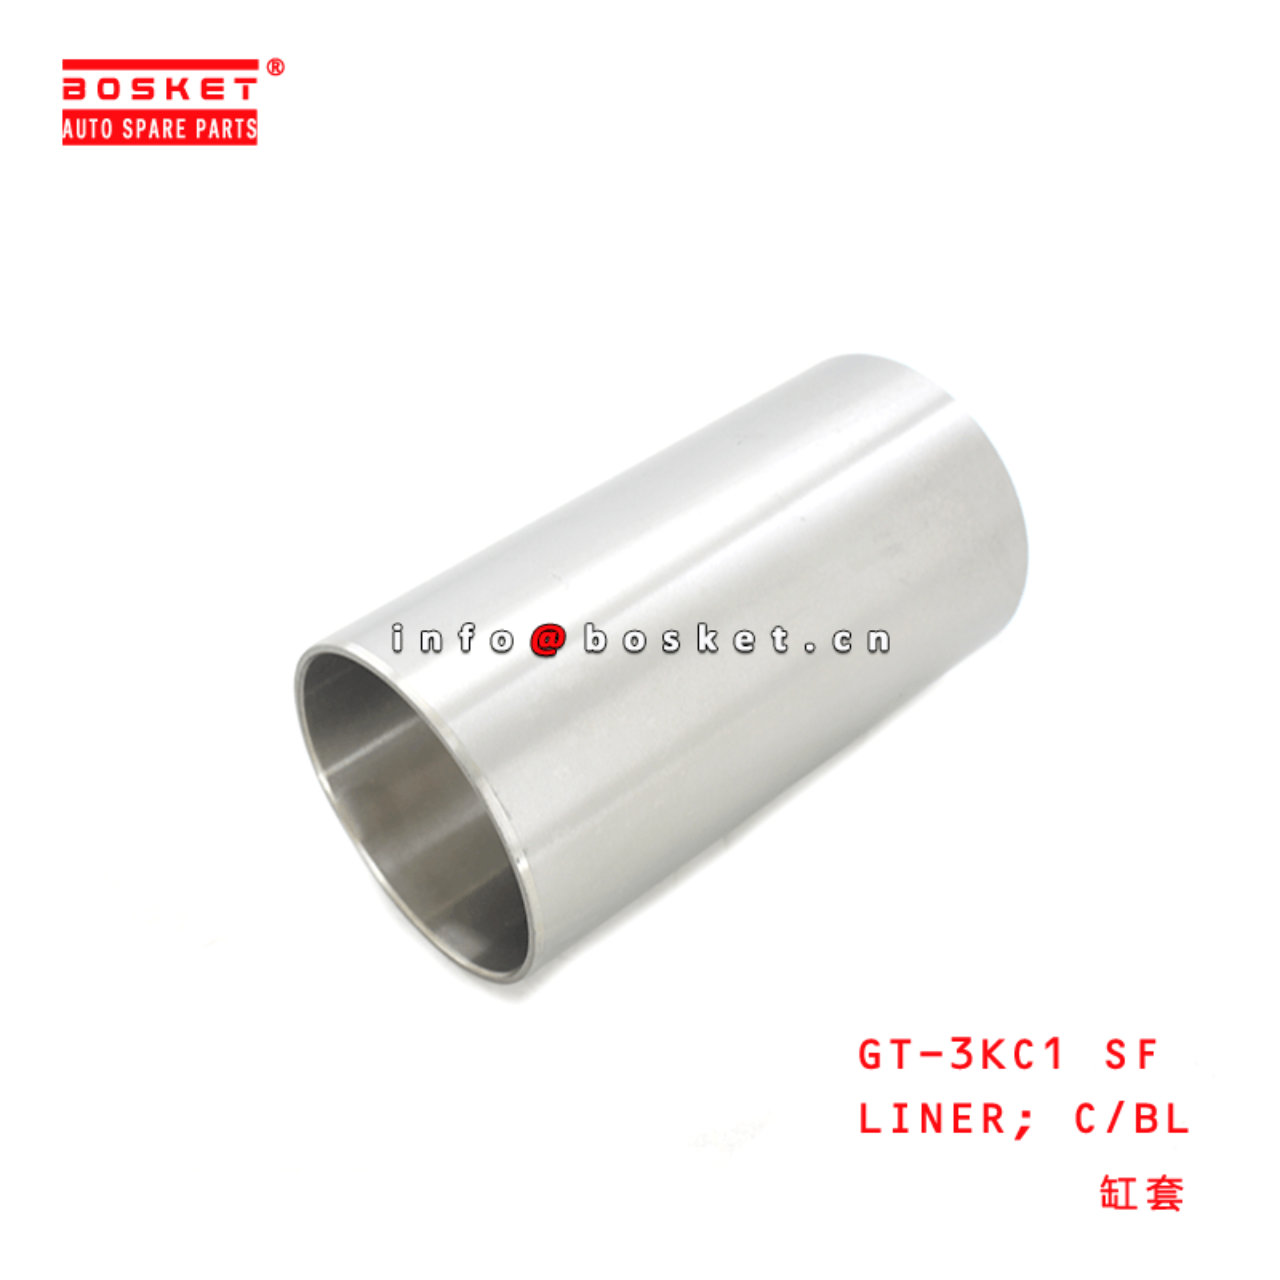 GT-3KC1 SF Cylinder Block Liner Suitable for ISUZU